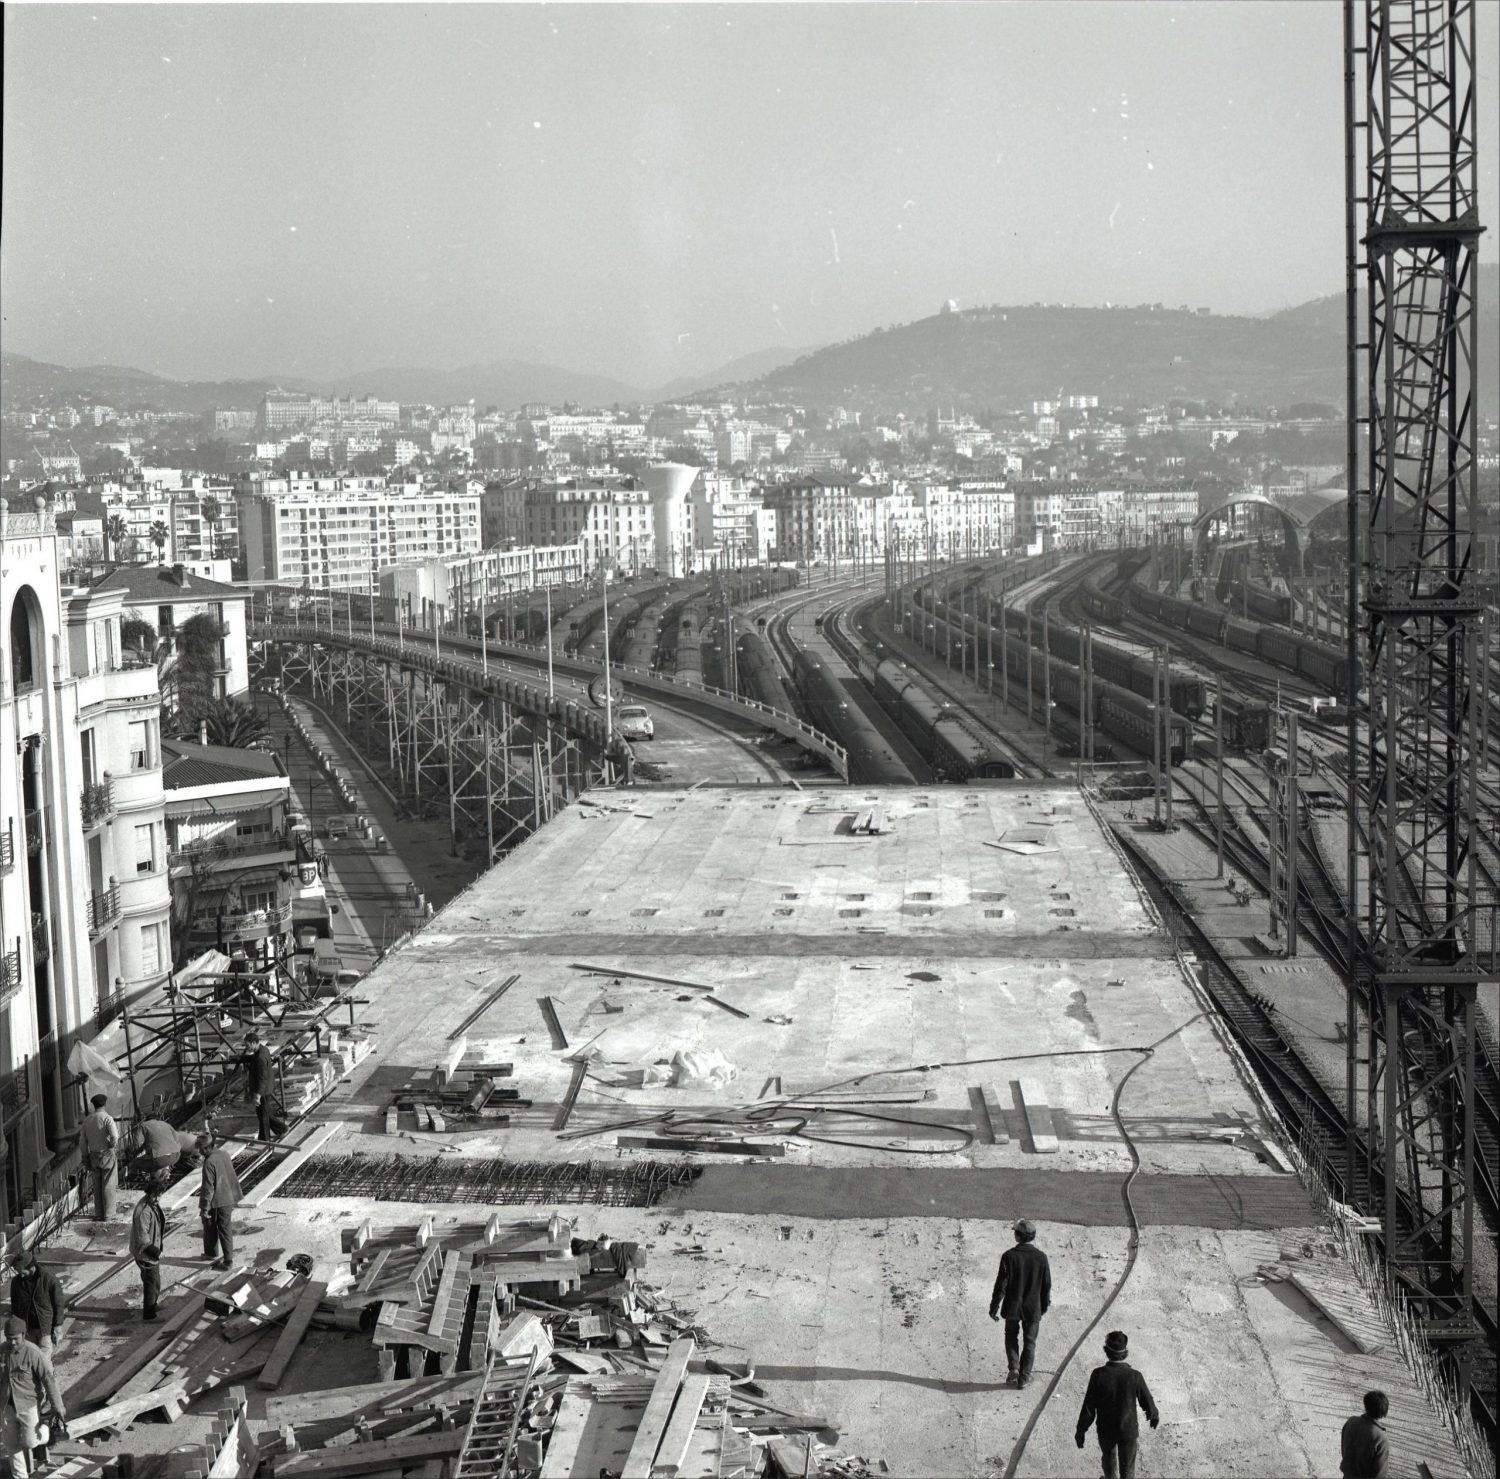 Chantier de construction, photographie noir et blanc